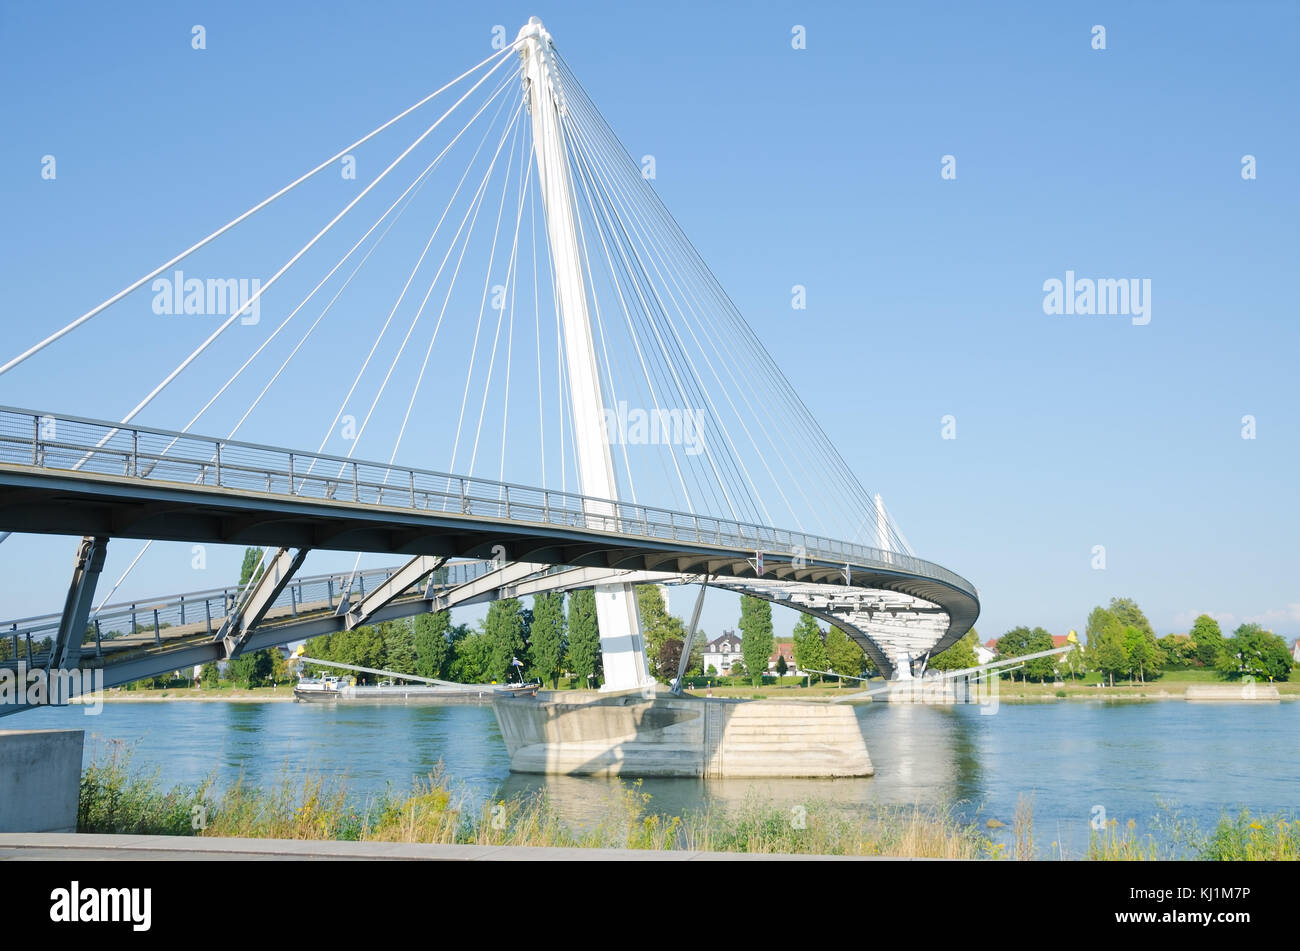 STRASBOURG, FRANCE. 31st August 2016. The Passerelle Mimram, a pedestrian bridge linking the German and French sides of the Rhine river. Stock Photo